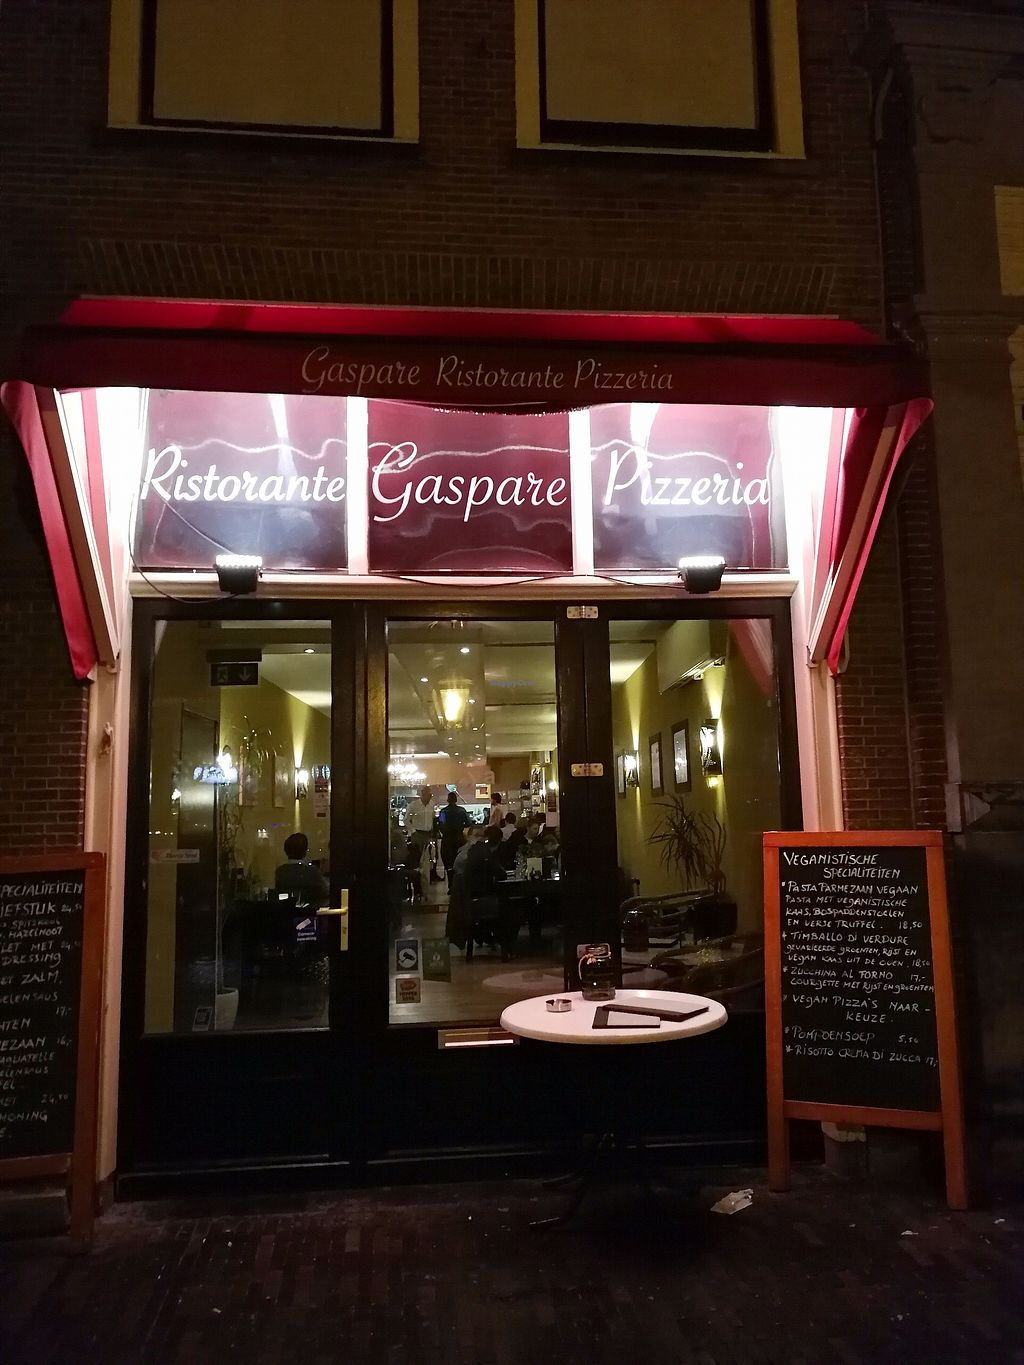 """Photo of Gaspare Ristorante Pizzeria  by <a href=""""/members/profile/Gudrun"""">Gudrun</a> <br/>From the outside @ night <br/> November 5, 2017  - <a href='/contact/abuse/image/98173/321998'>Report</a>"""